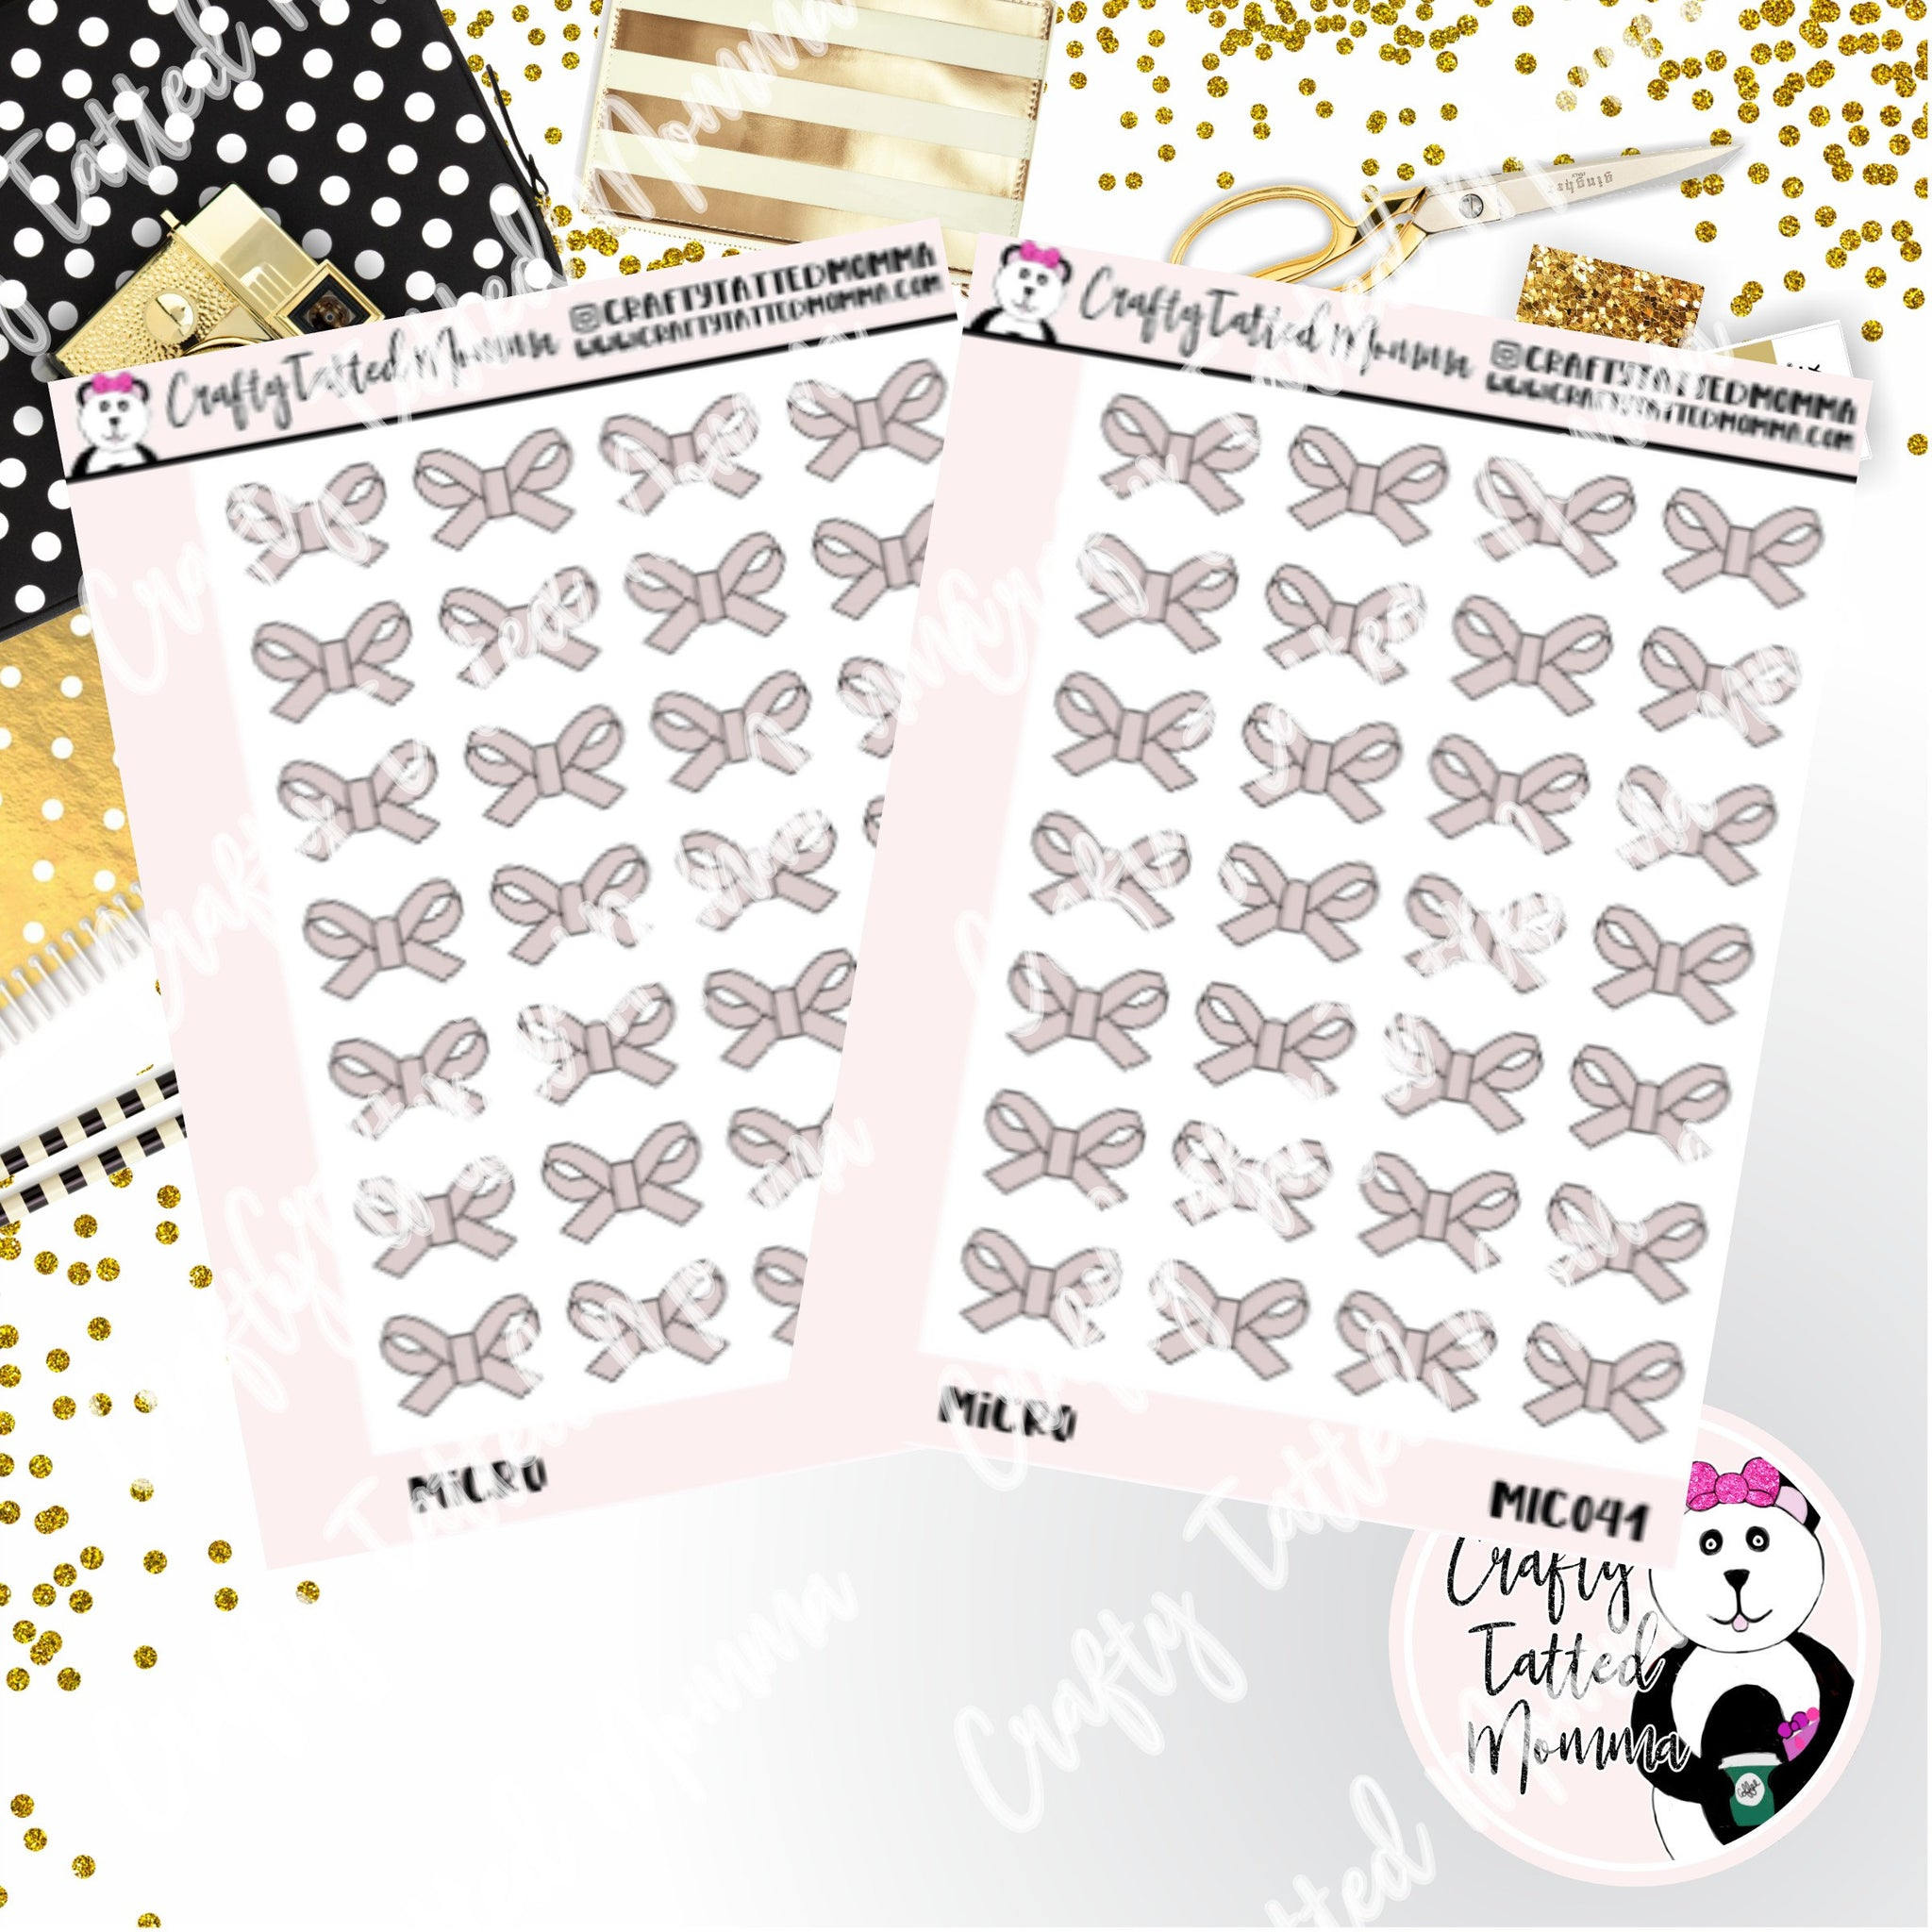 Purple-Gray Micro Sticker Sheet   Mini Stickers   Planner Stickers   TN Stickers   Hobonichi Stickers   Functional Stickers   Micro Plan